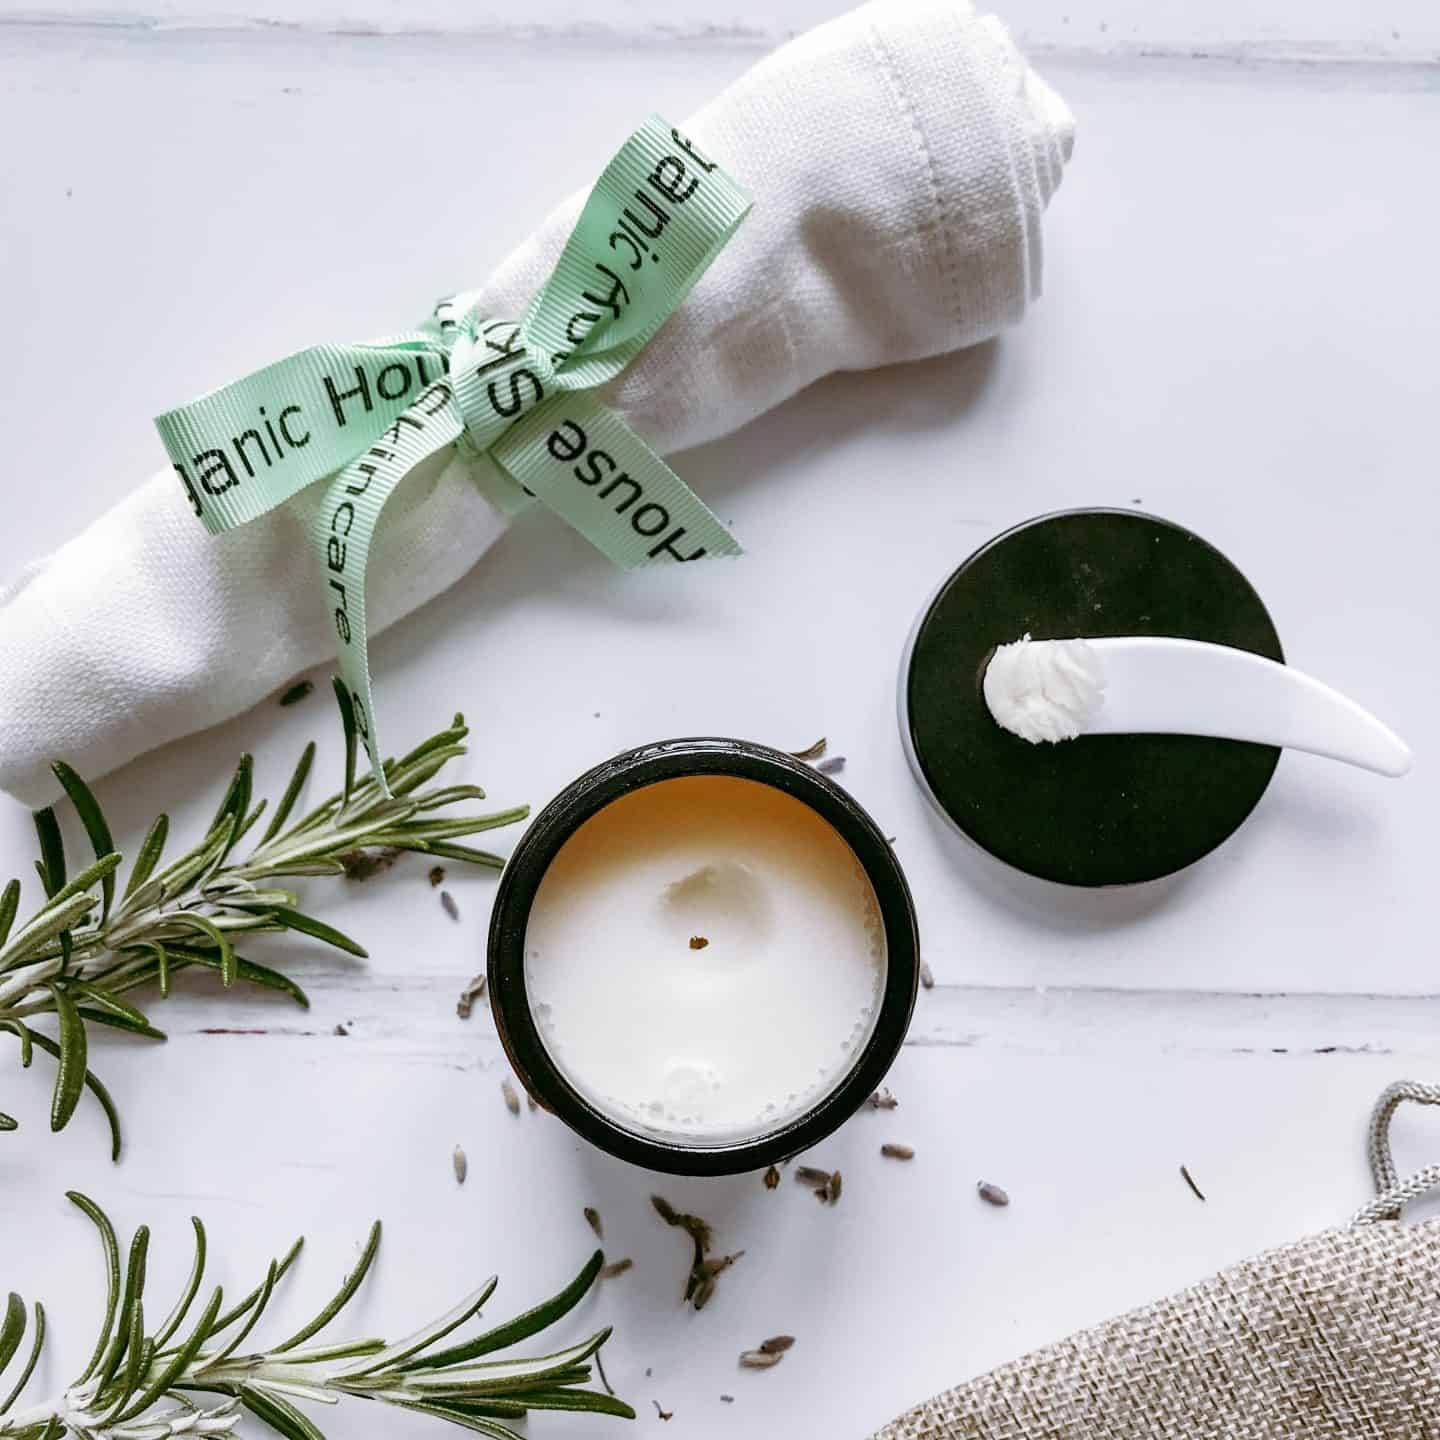 Organic House Clean & Calm Hot Cloth Cleanser with Lavender and Rosemary -the ideal all-natural cleansing balm